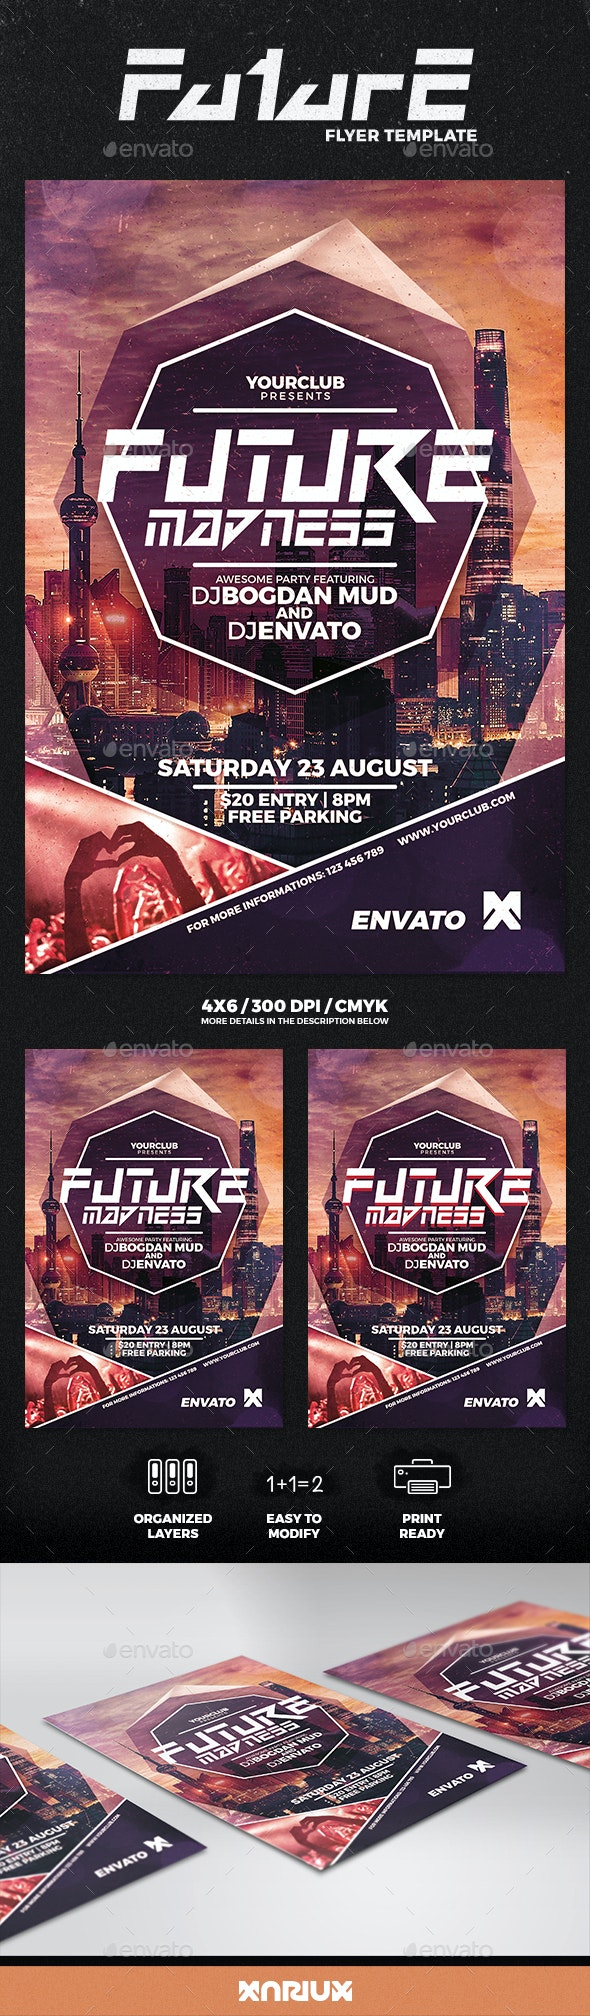 Future Madness Flyer - Clubs & Parties Events